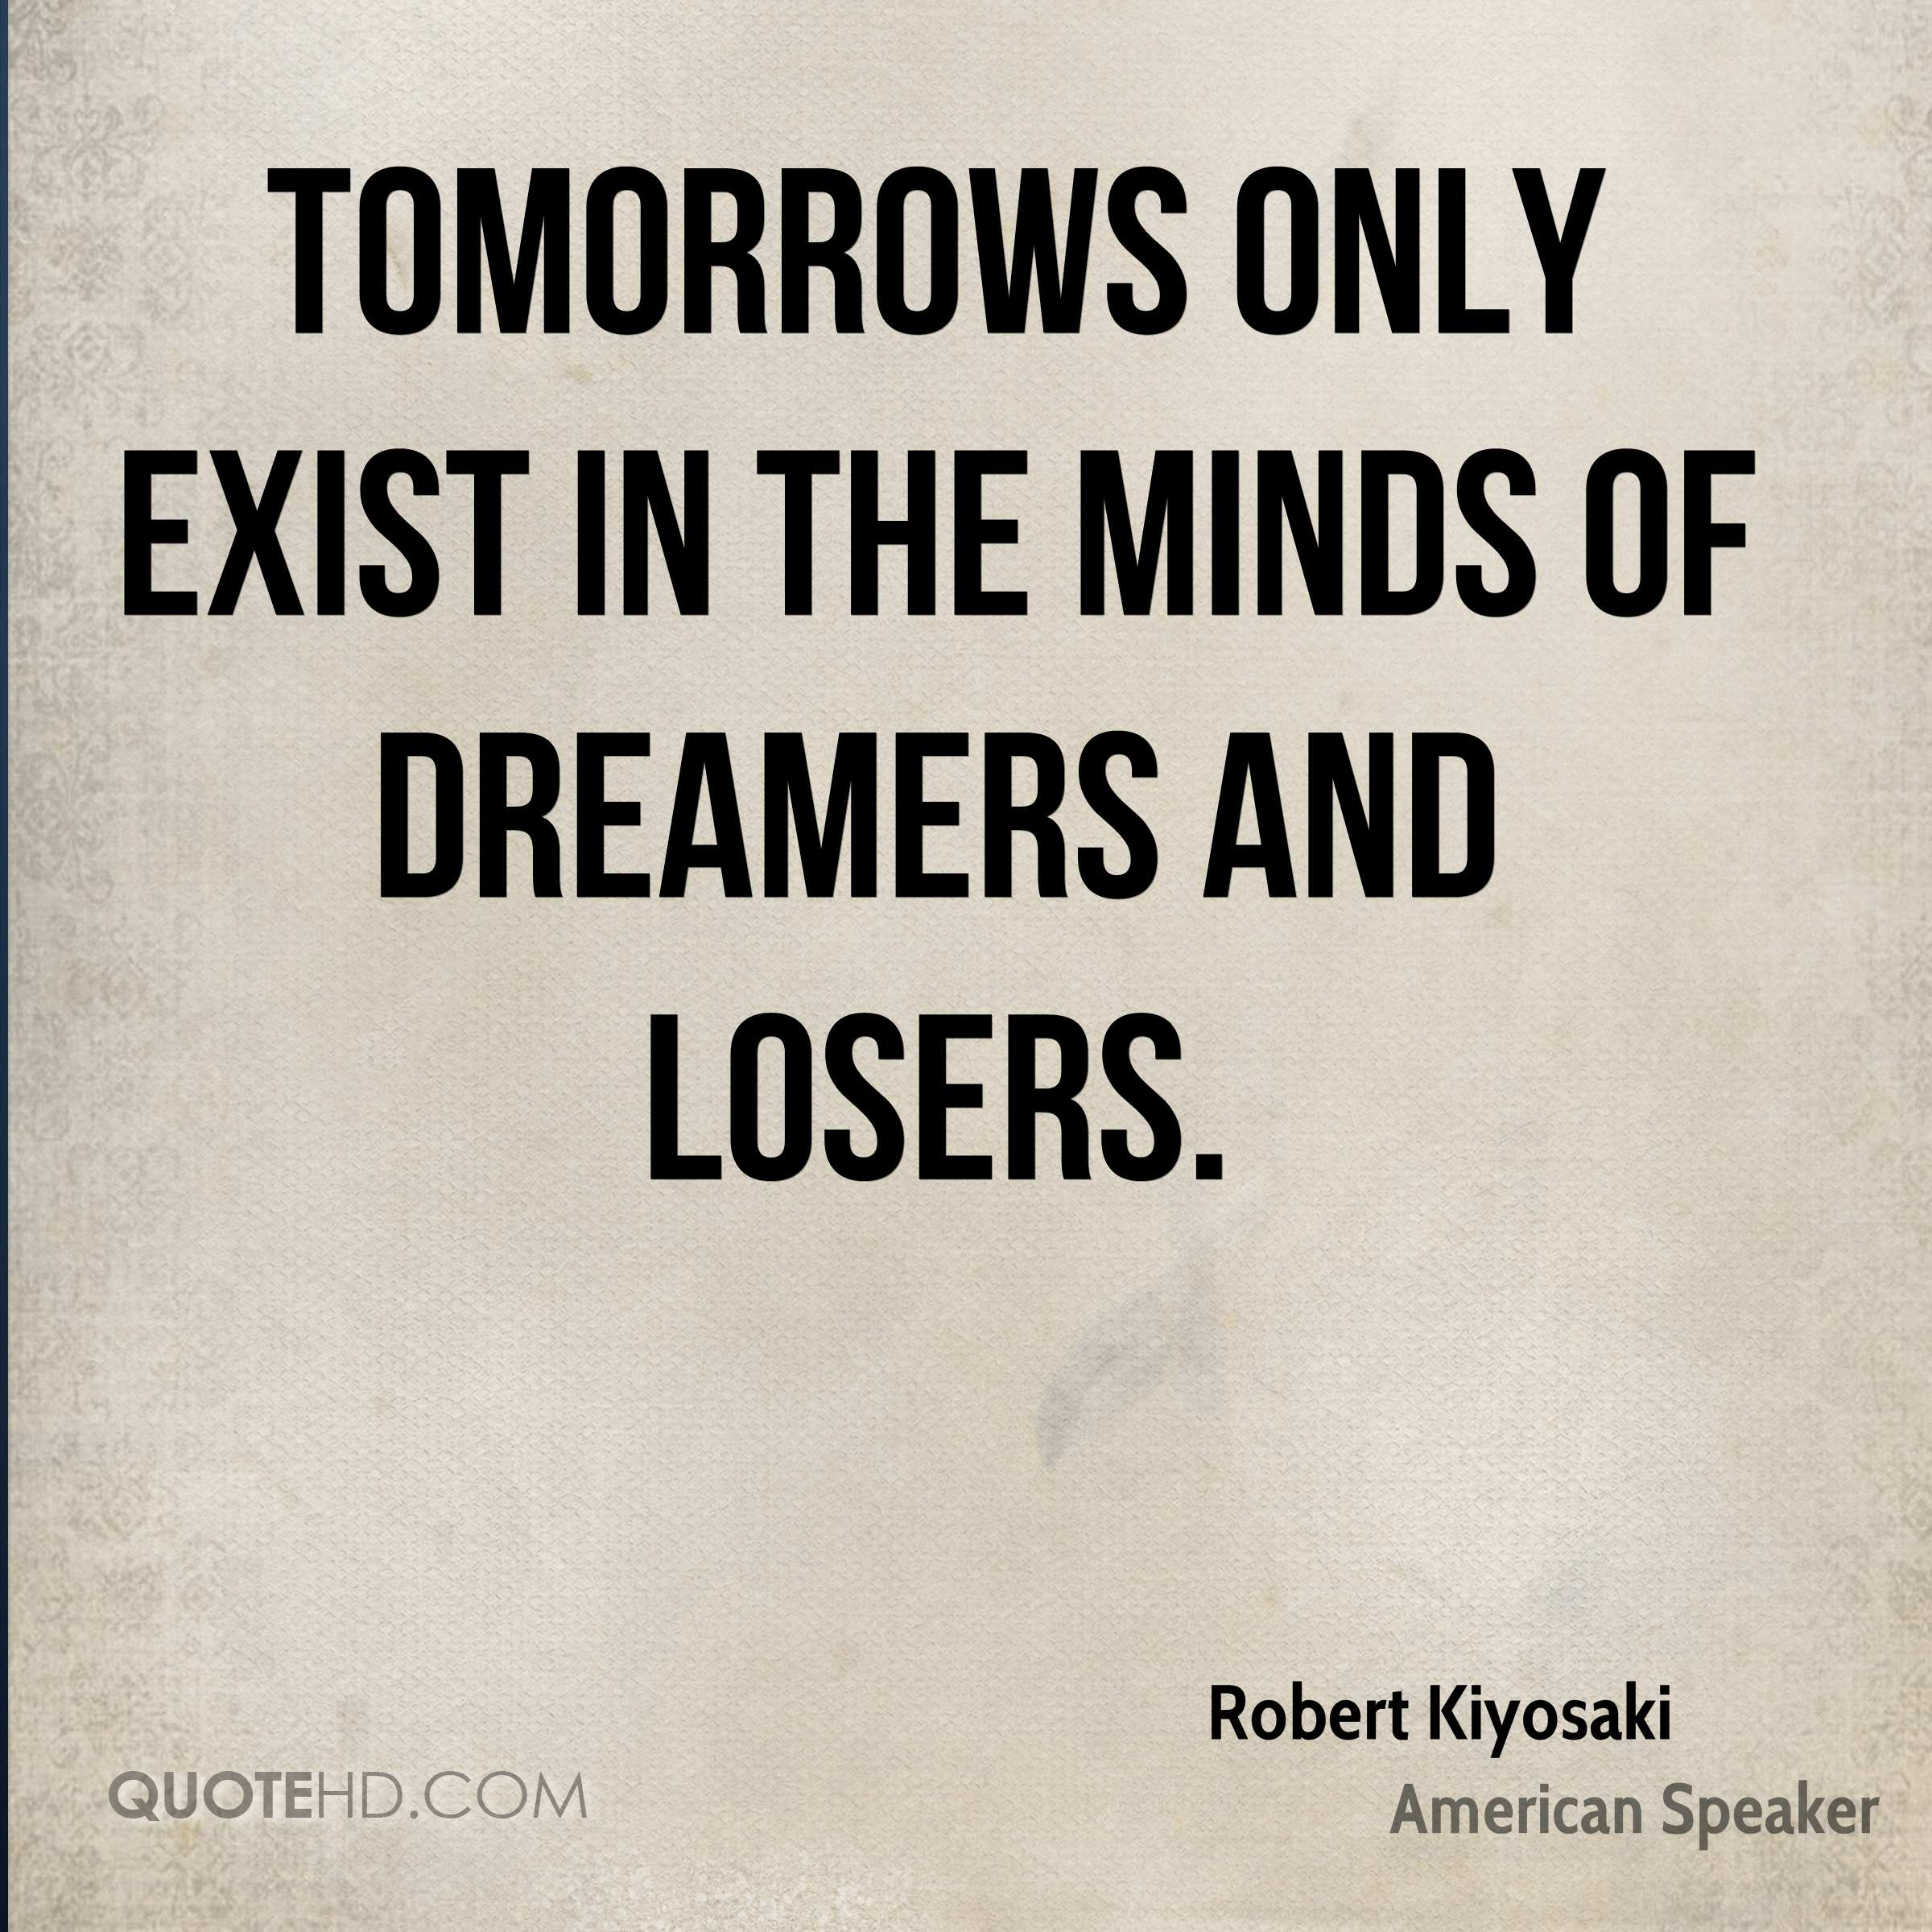 Tomorrows only exist in the minds of dreamers and losers.